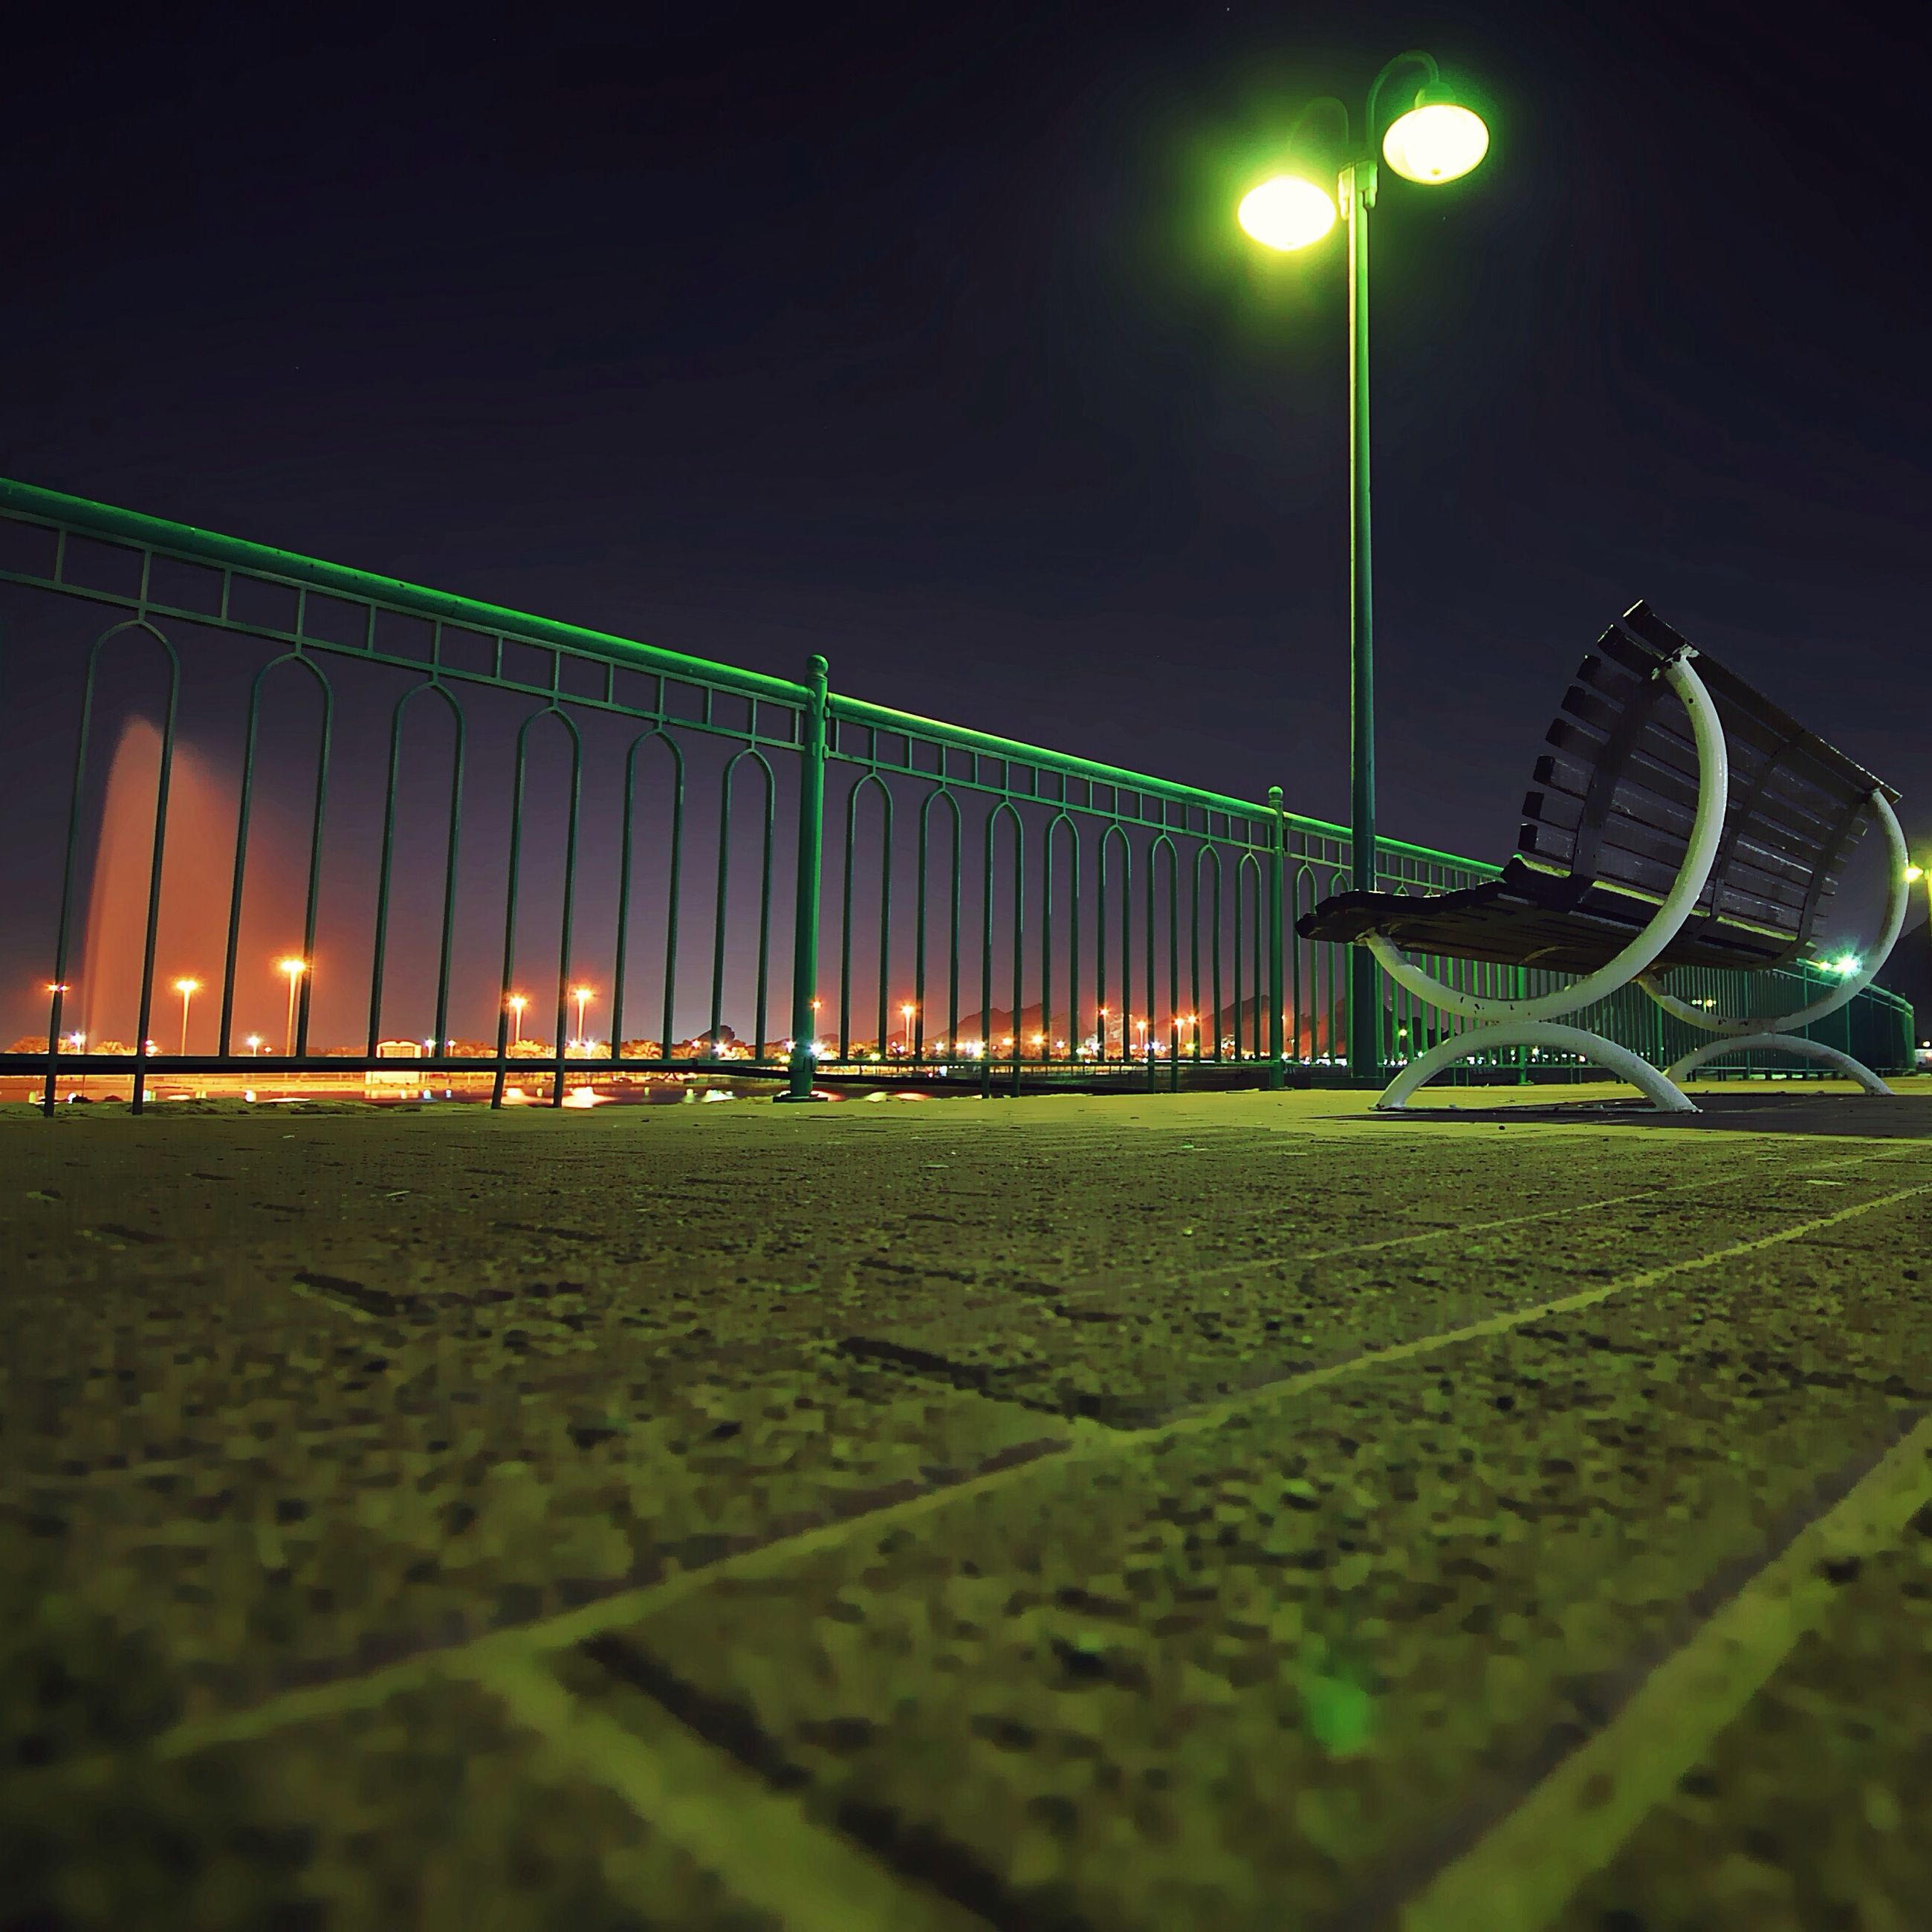 night, illuminated, lighting equipment, street light, green color, street, surface level, outdoors, light - natural phenomenon, grass, sport, city, built structure, building exterior, road, no people, incidental people, architecture, arts culture and entertainment, empty